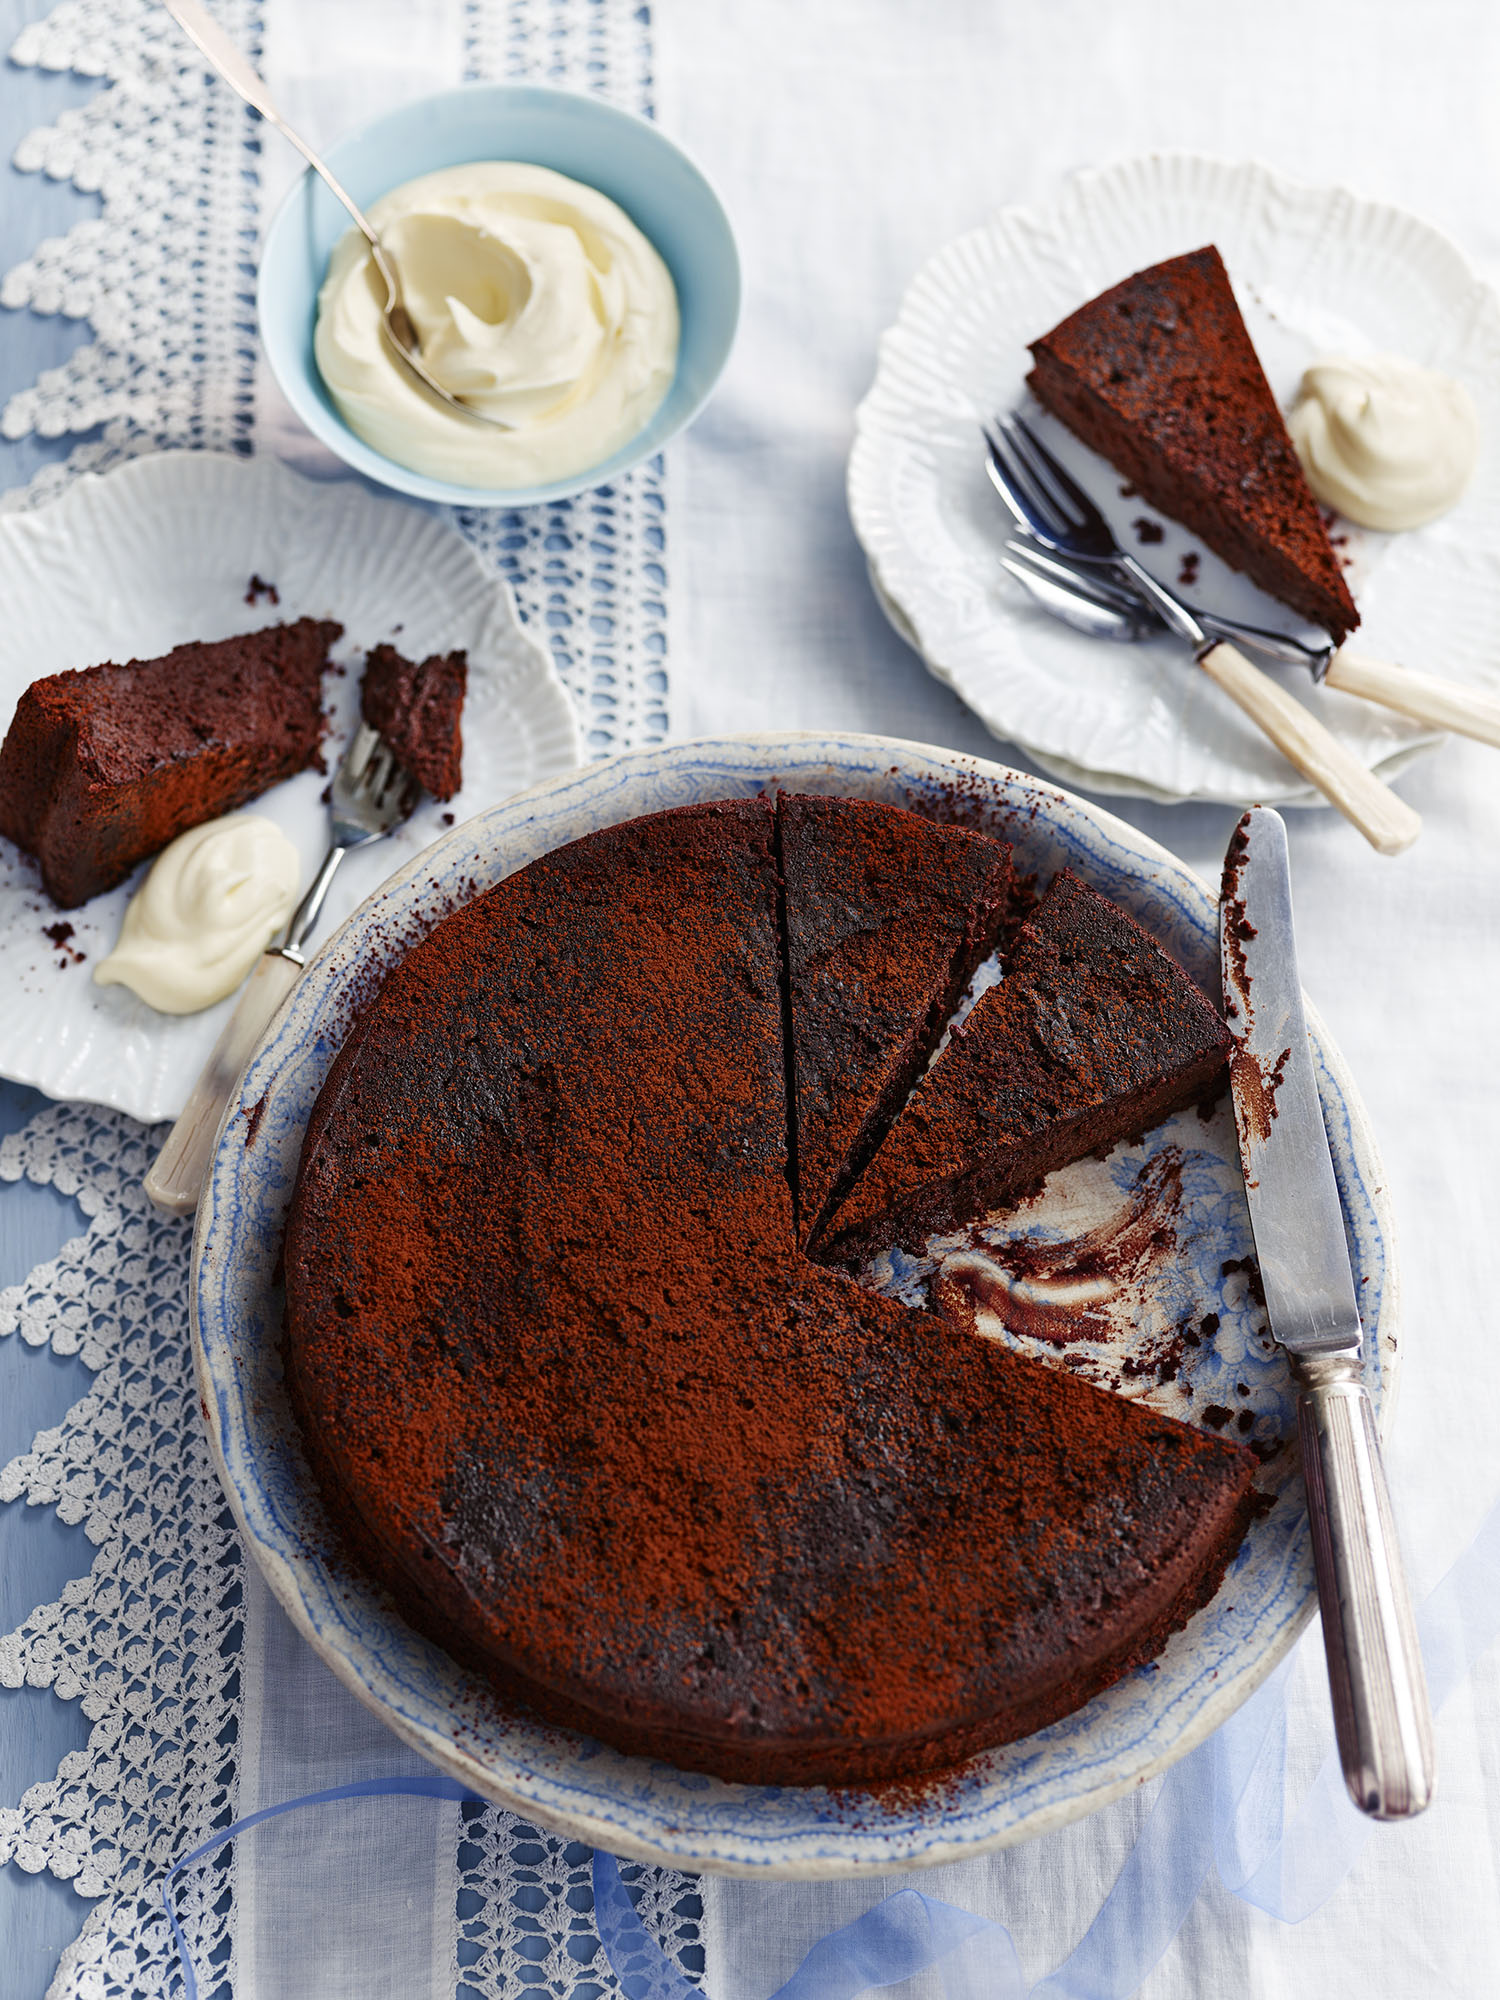 Pressed Chocolate Cake Photograph Gareth Morgans Prop Styling Tonia Shuttleworth Recipe The River Cafe